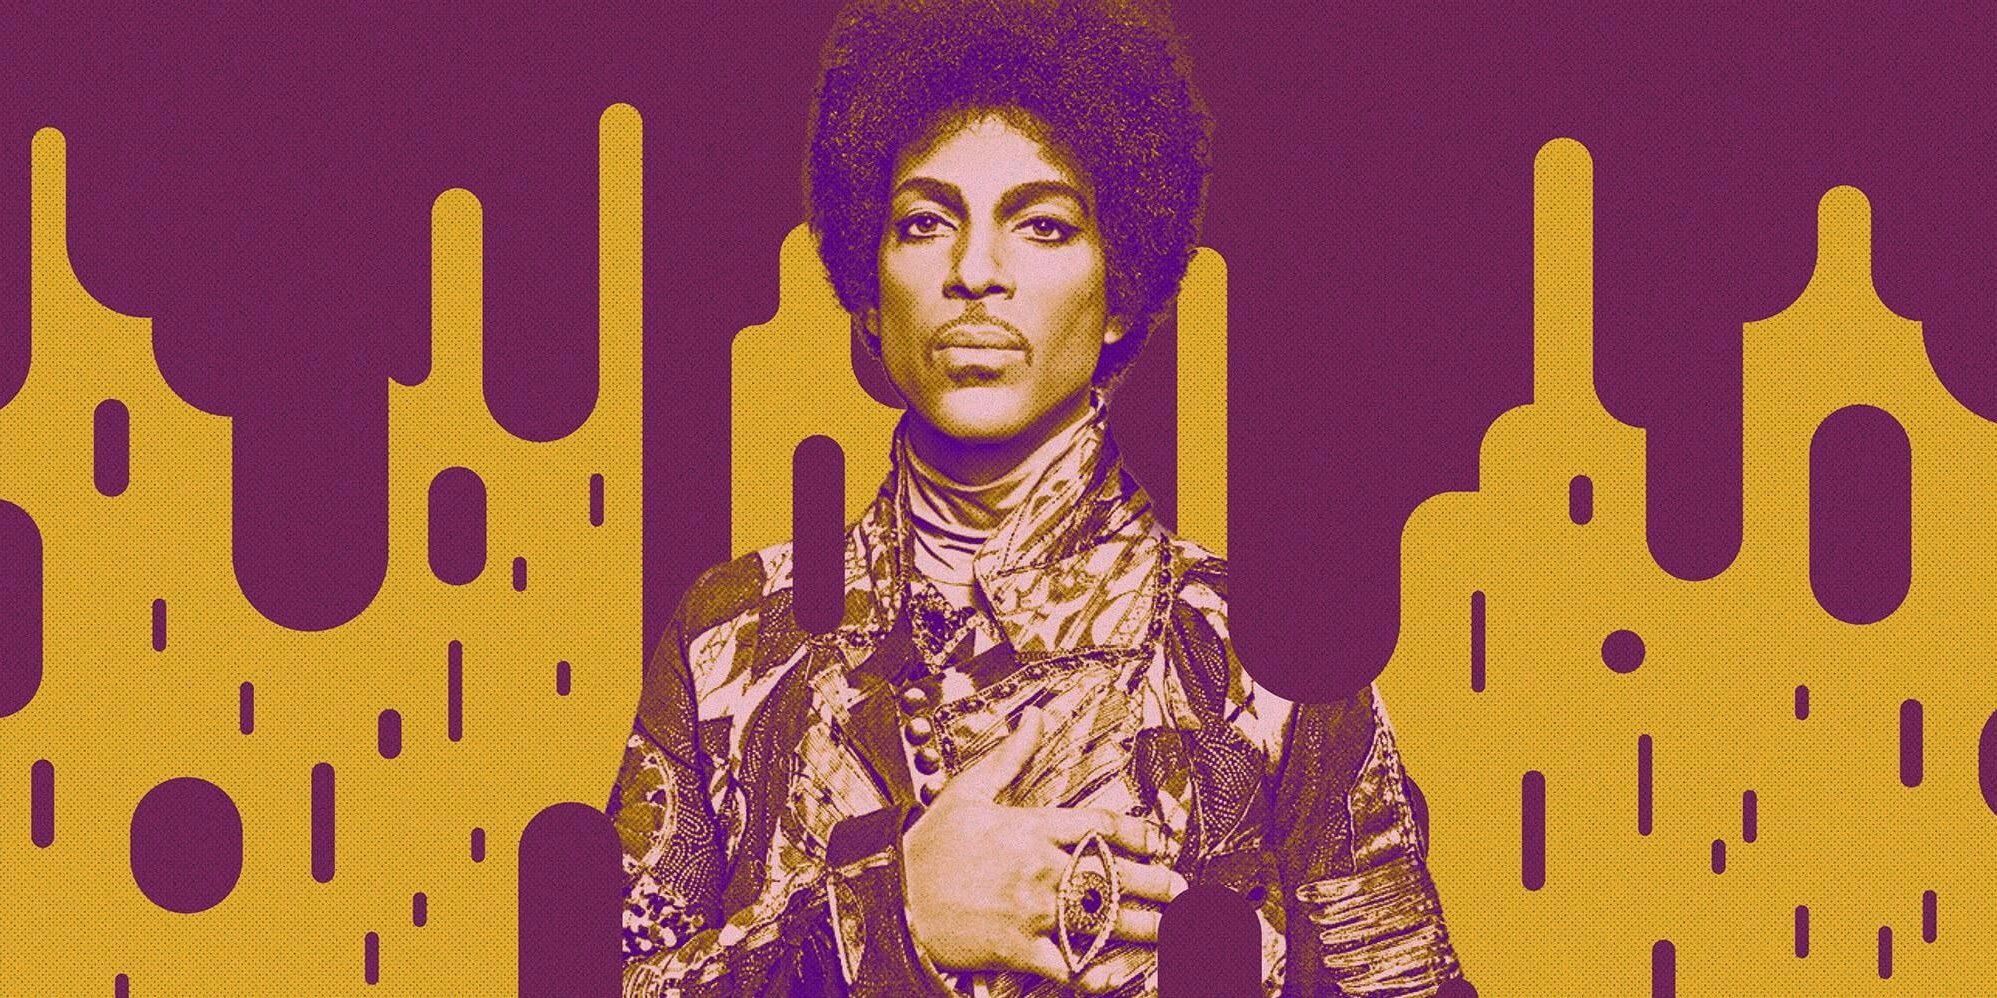 Filipino musicians pay tribute to Prince